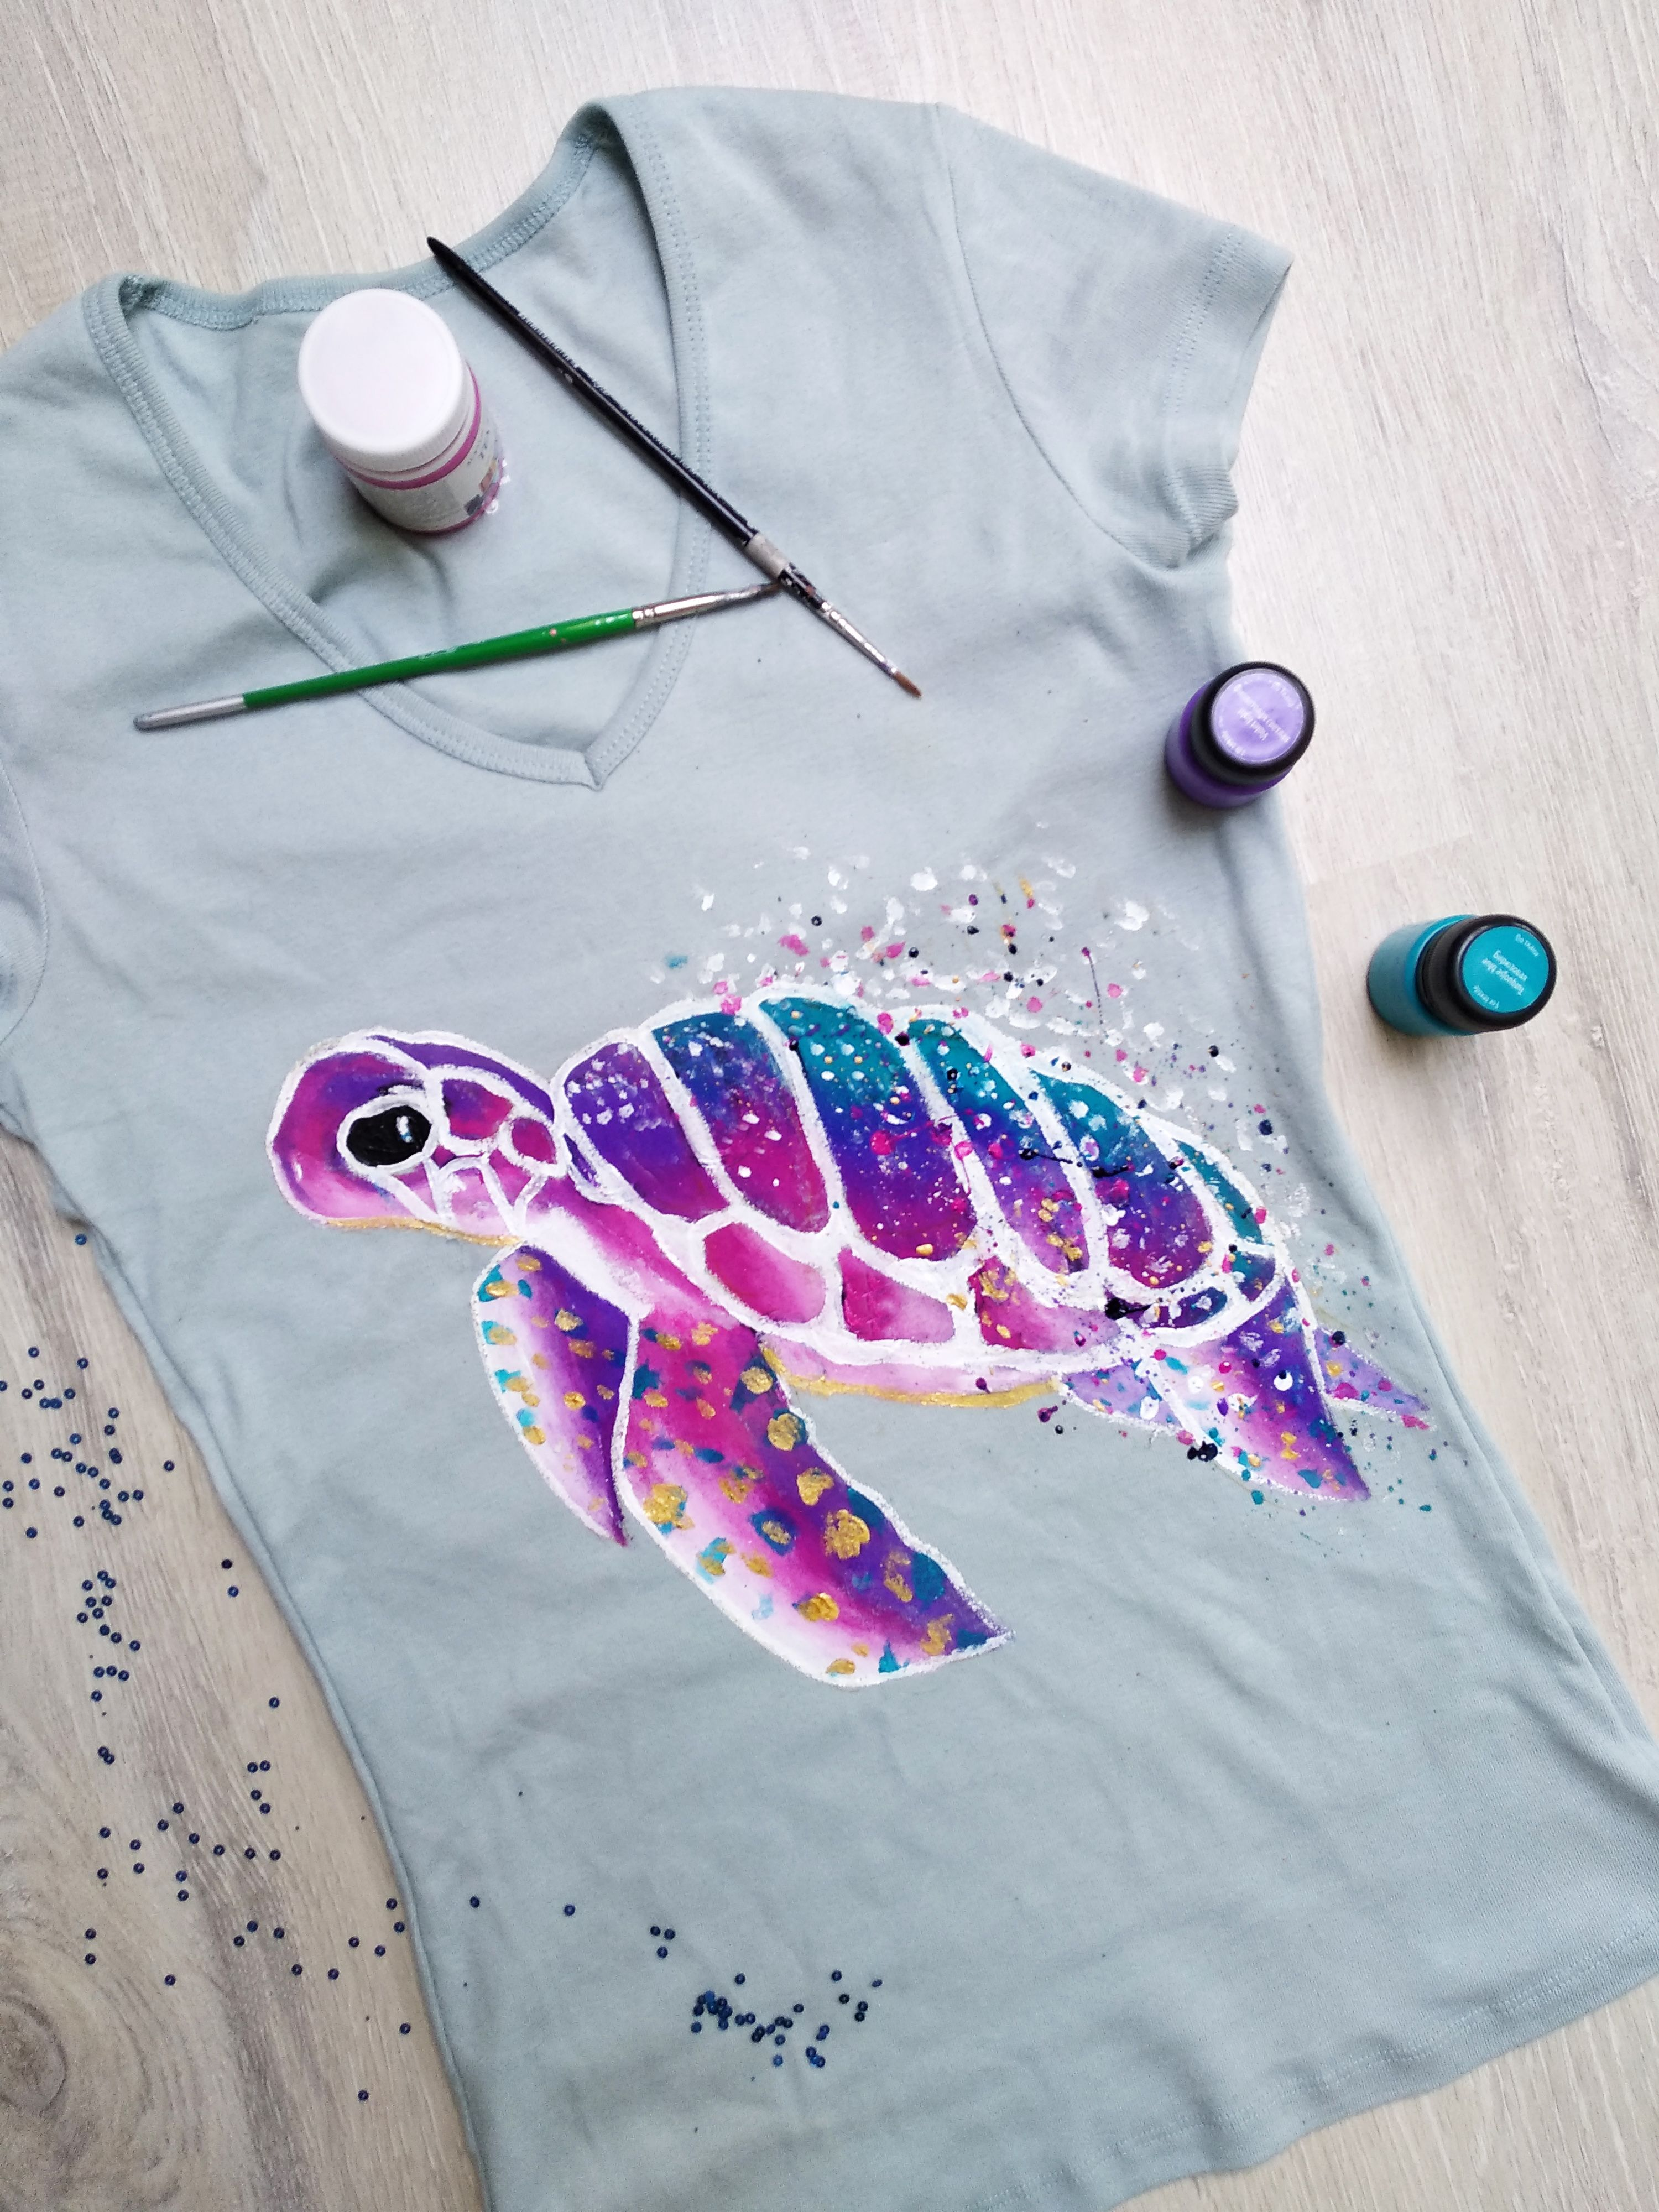 Acrylic painting on tshirt fabric painting techniques